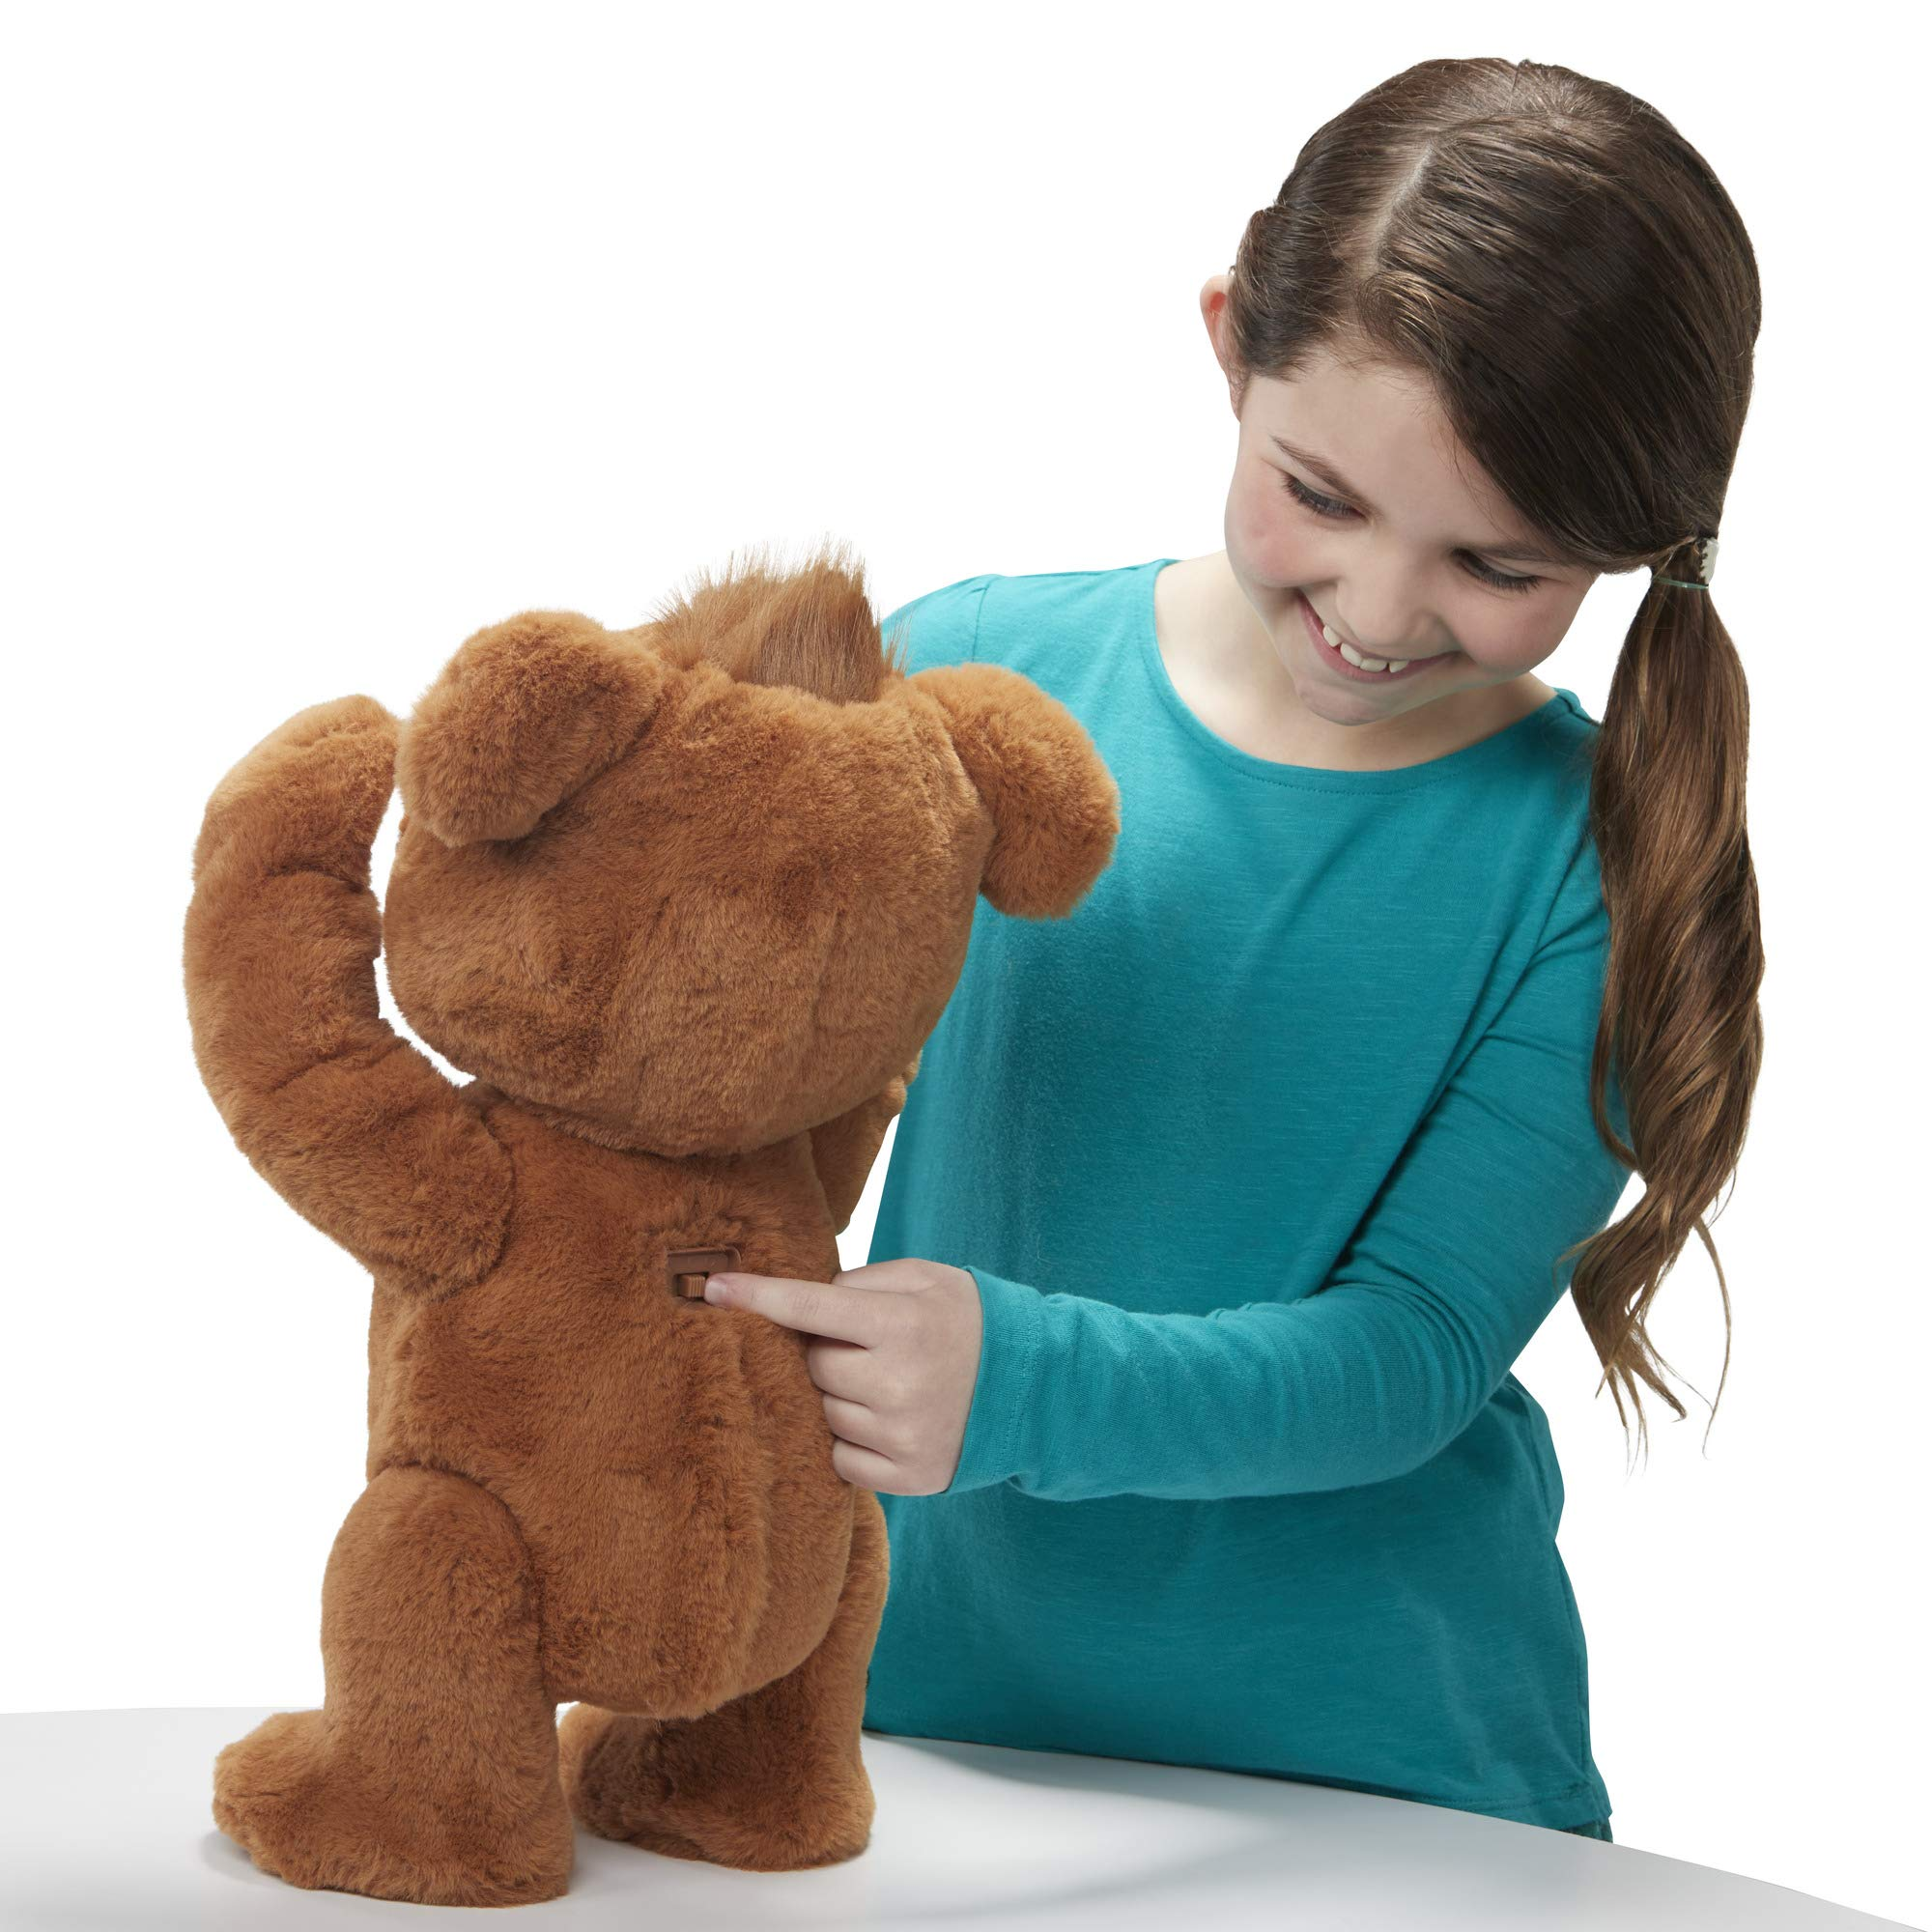 FurReal Cubby, The Curious Bear Interactive Plush Toy, Ages 4 and Up by FurReal (Image #12)